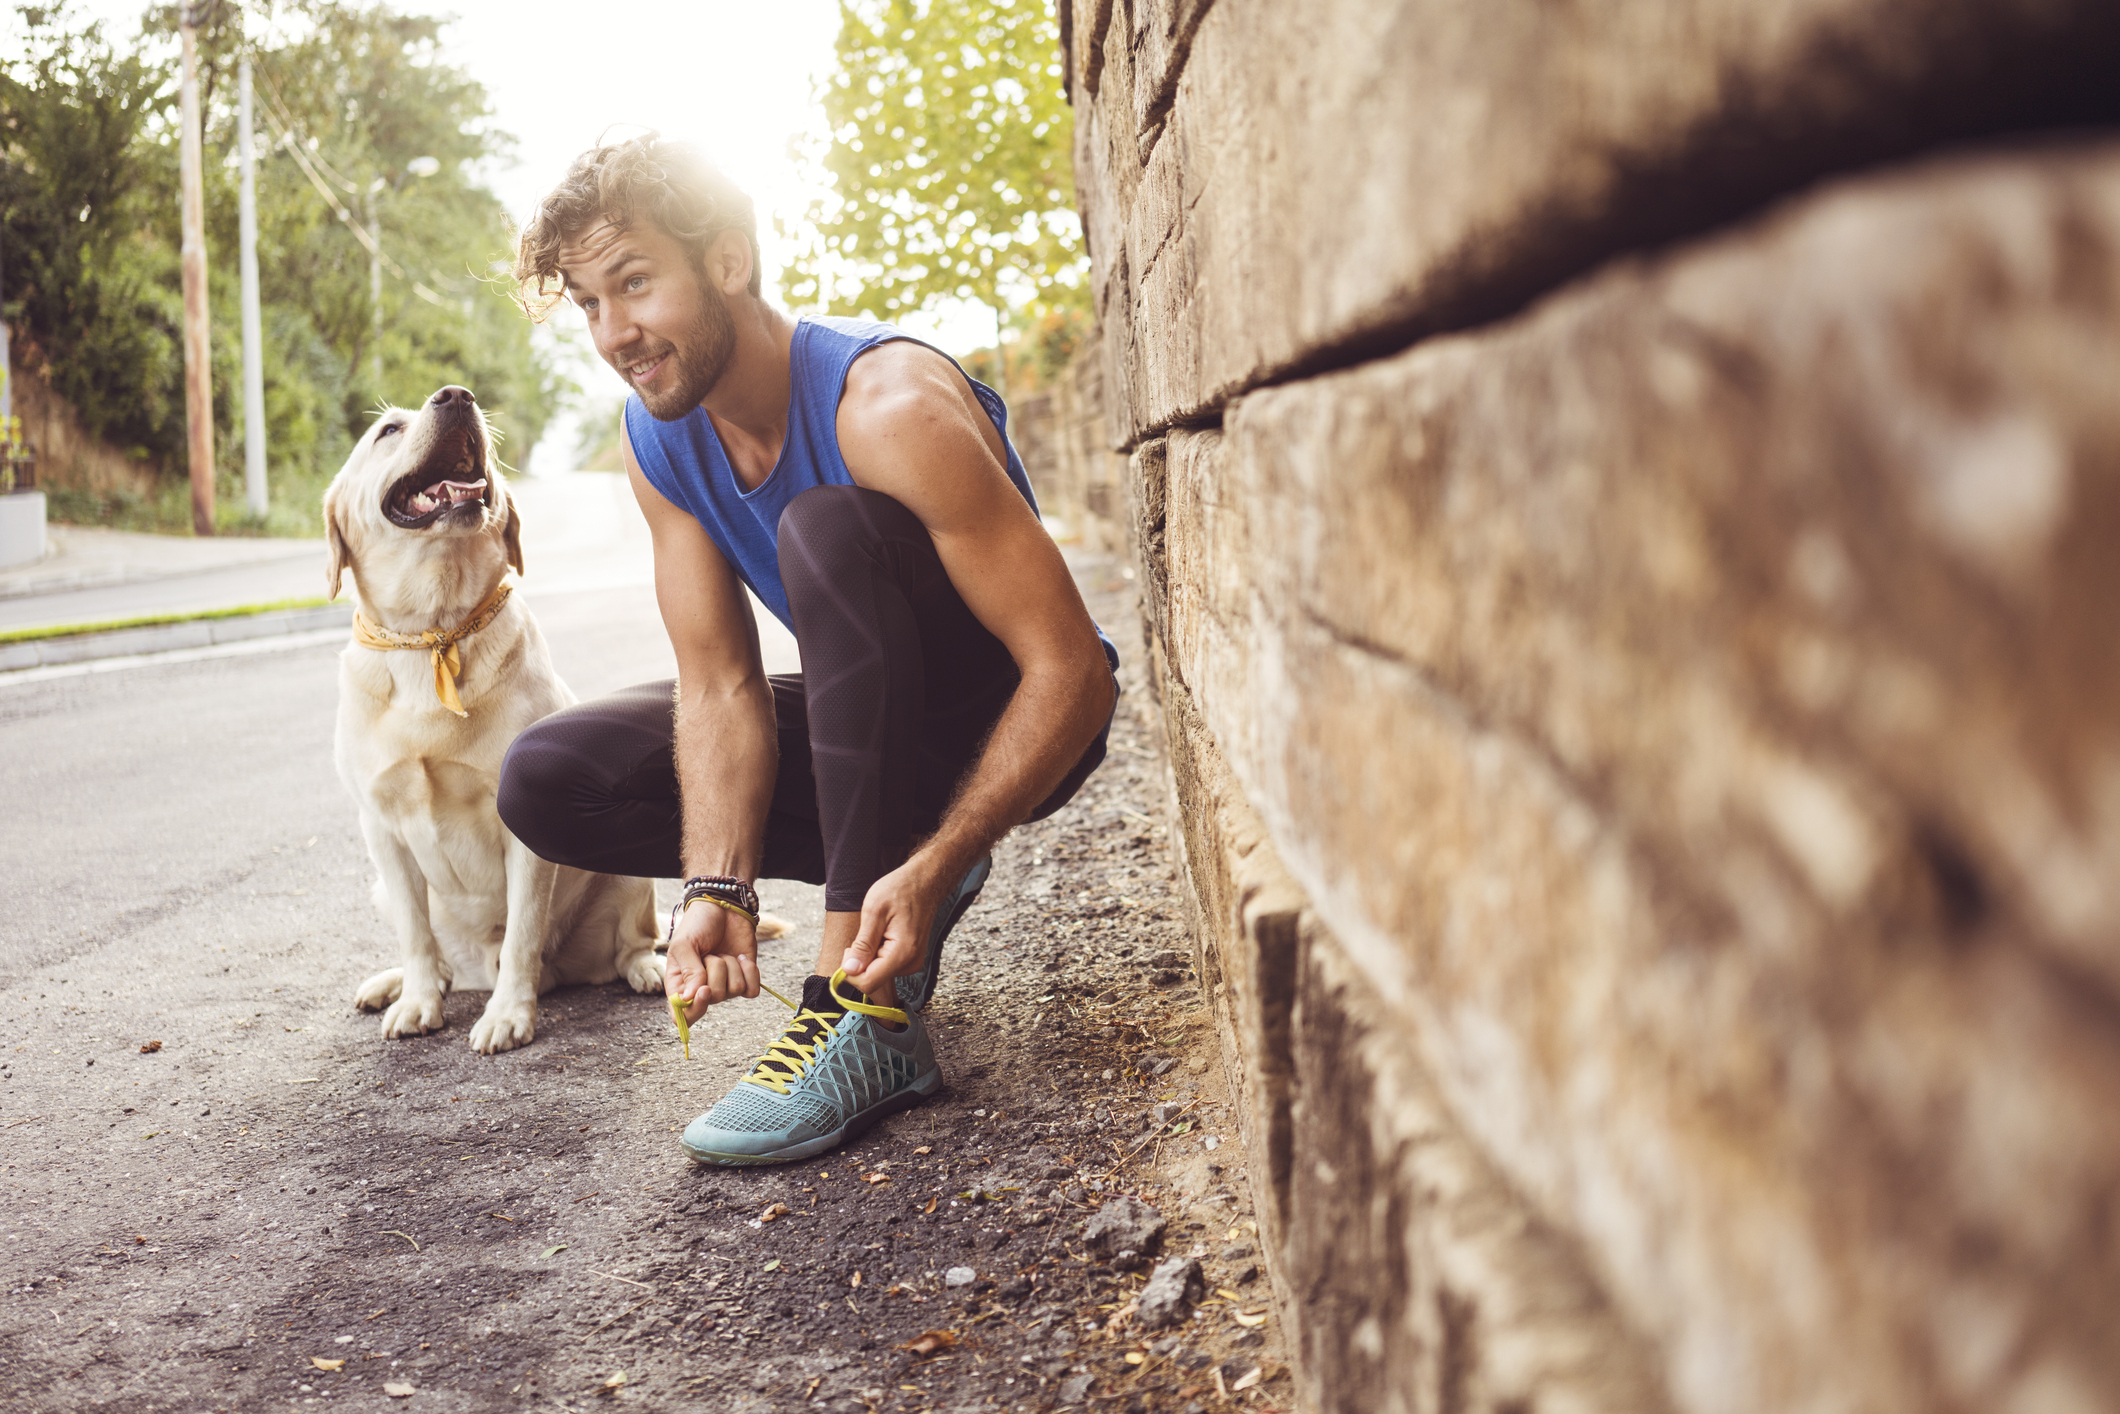 Man tying up his shoelaces before leaving for a run with his dog